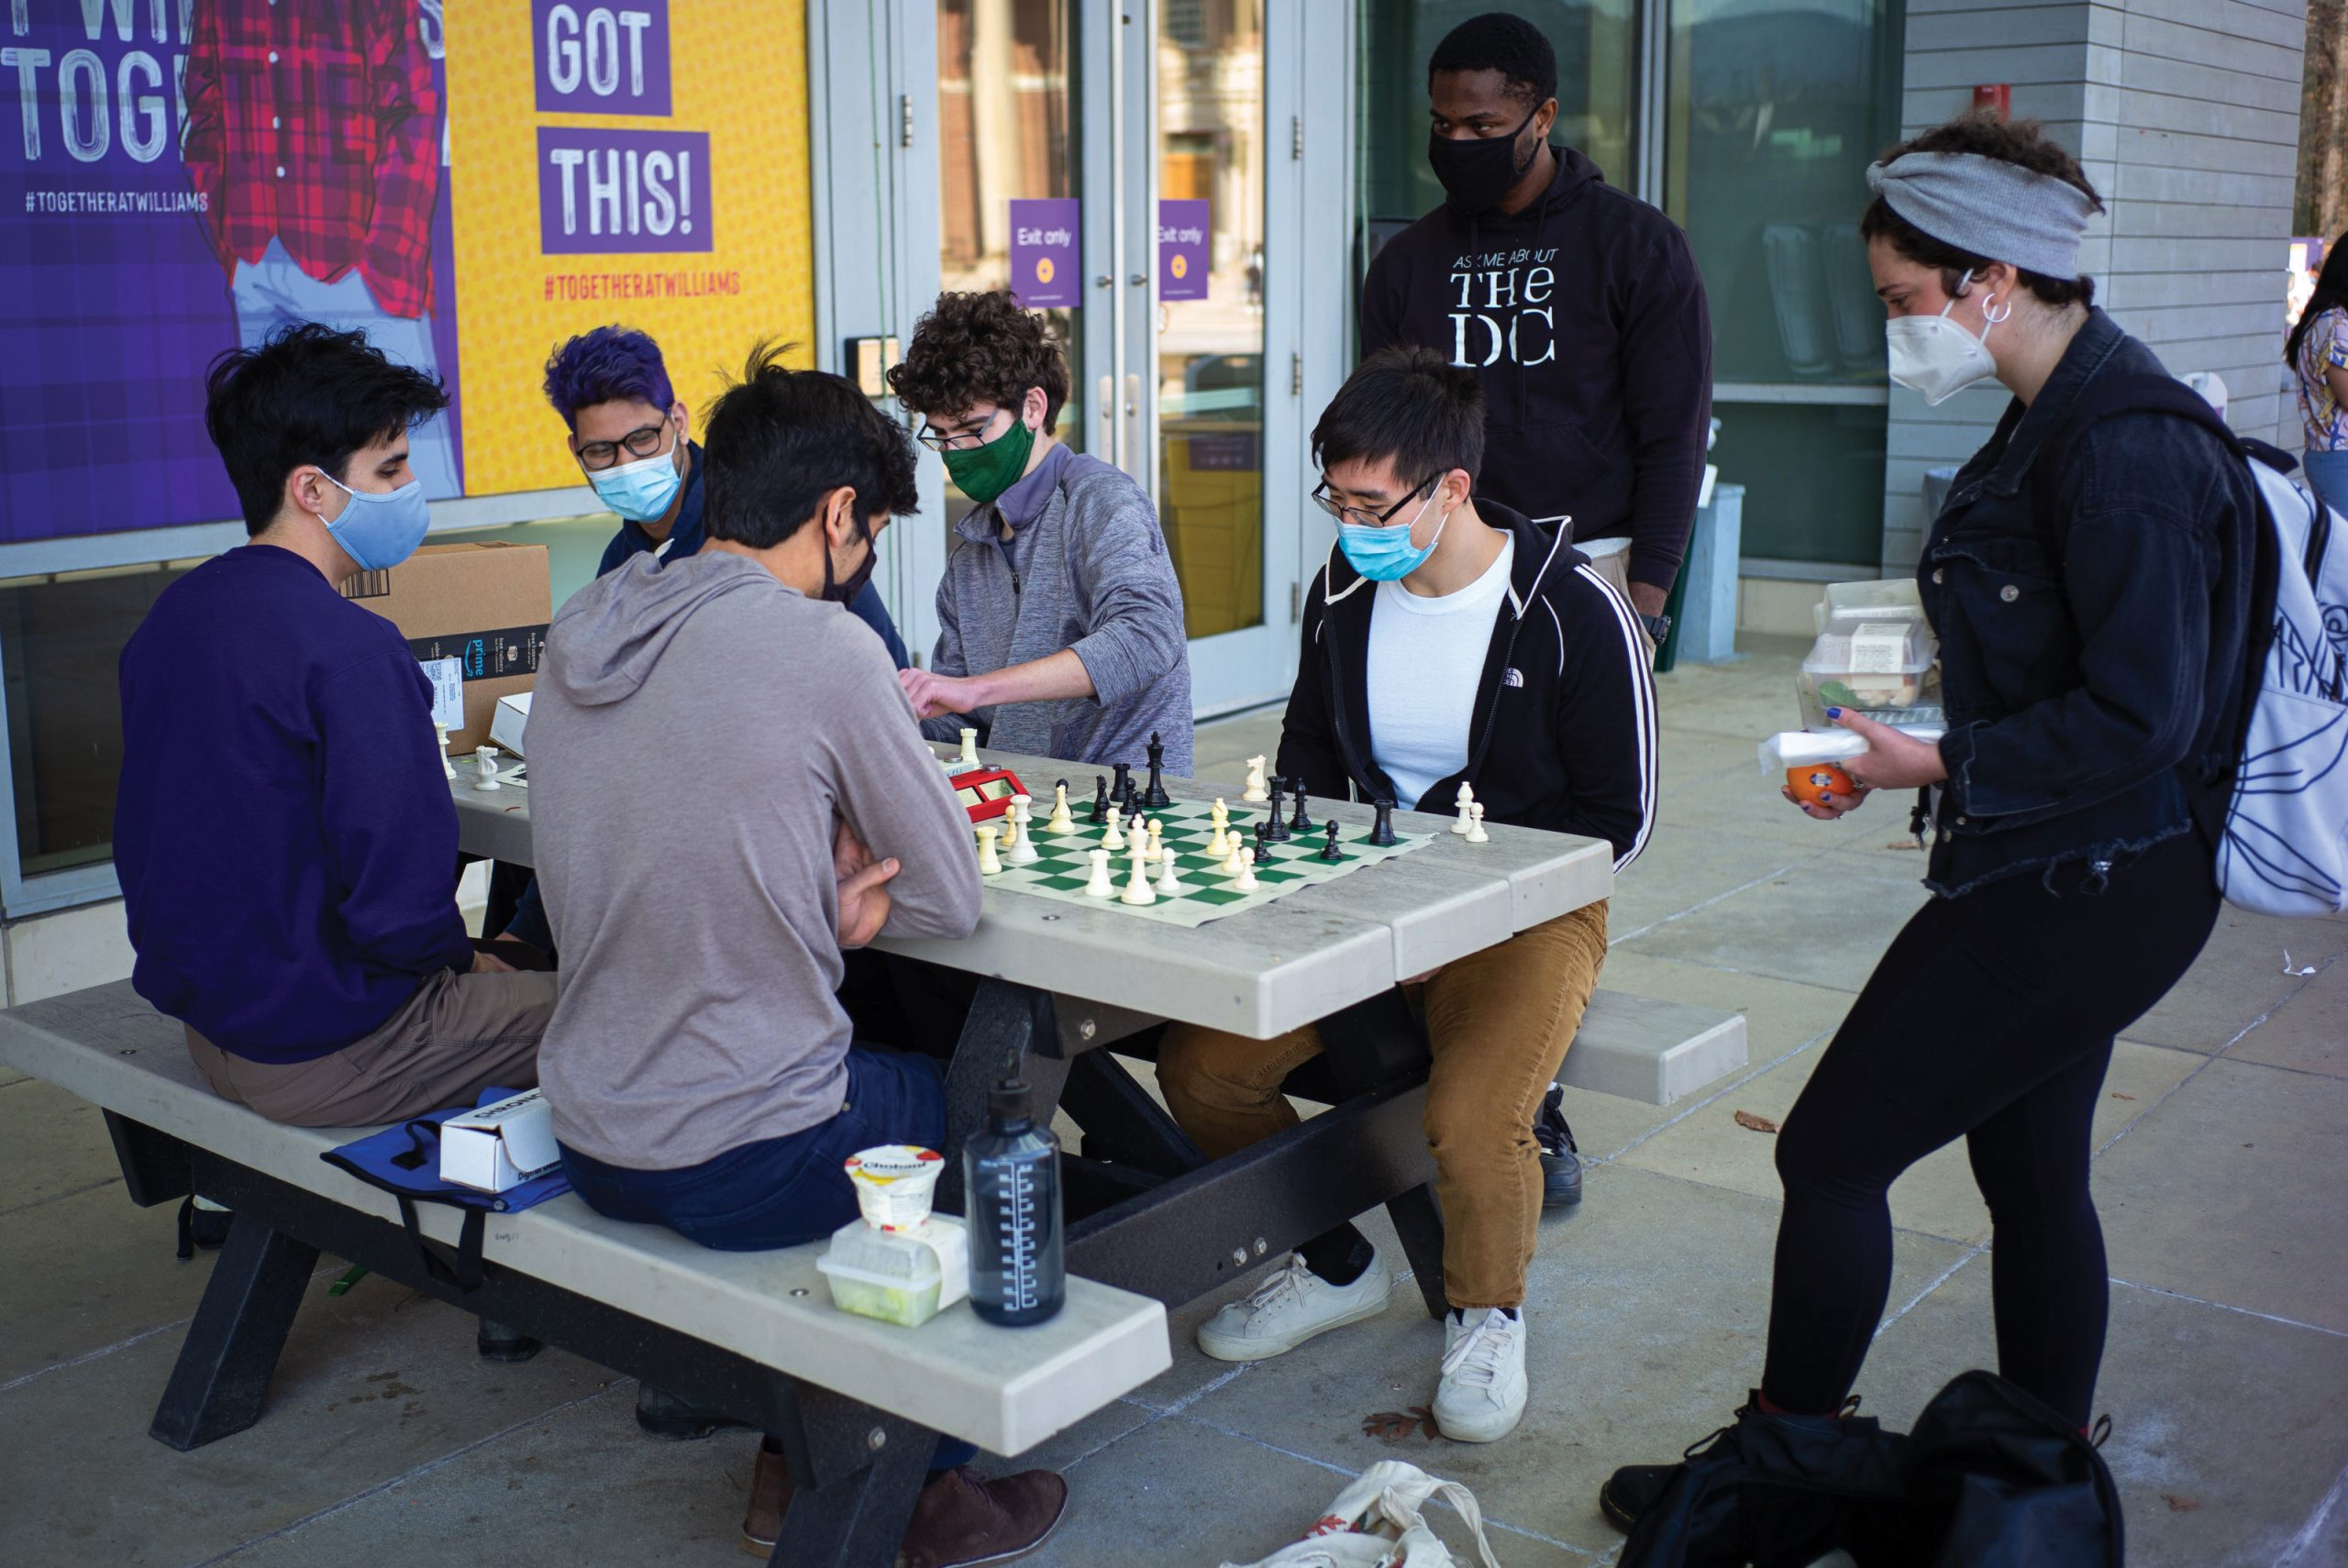 Chess games outside the Paresky Center in March.